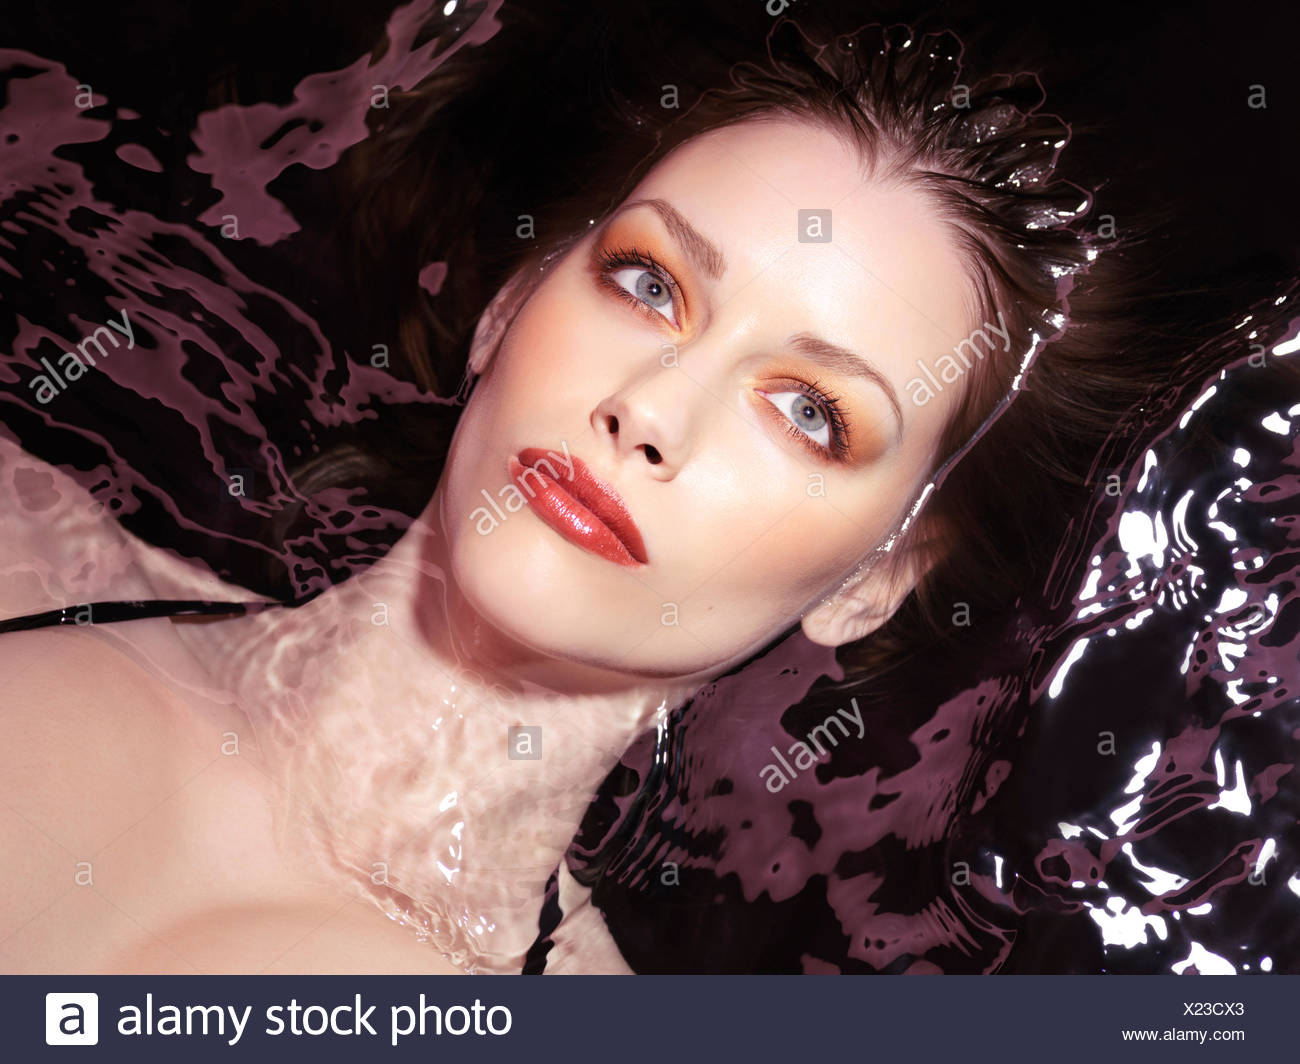 Woman wearing makeup lying in dark water - Stock Image